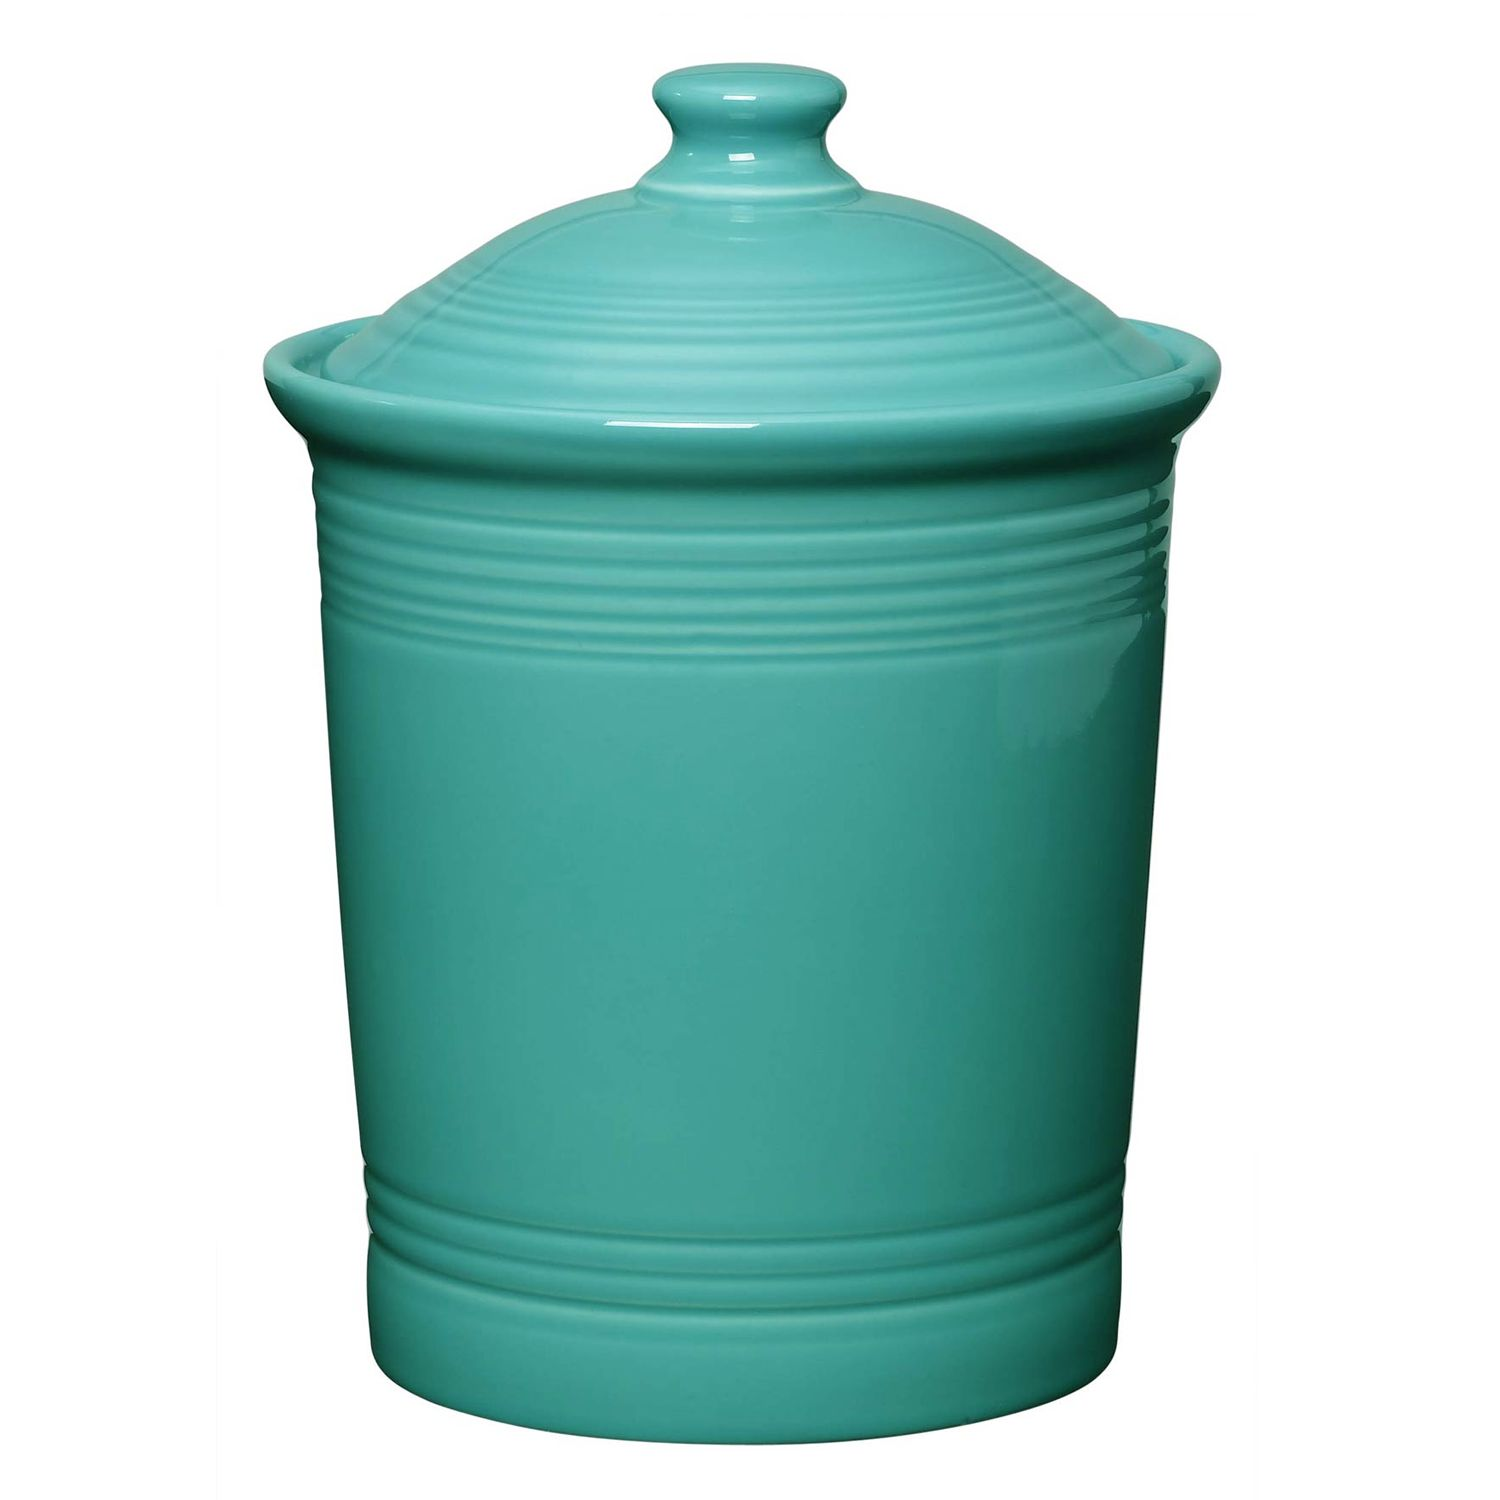 Blue Kitchen Canisters - Oxobee.com -